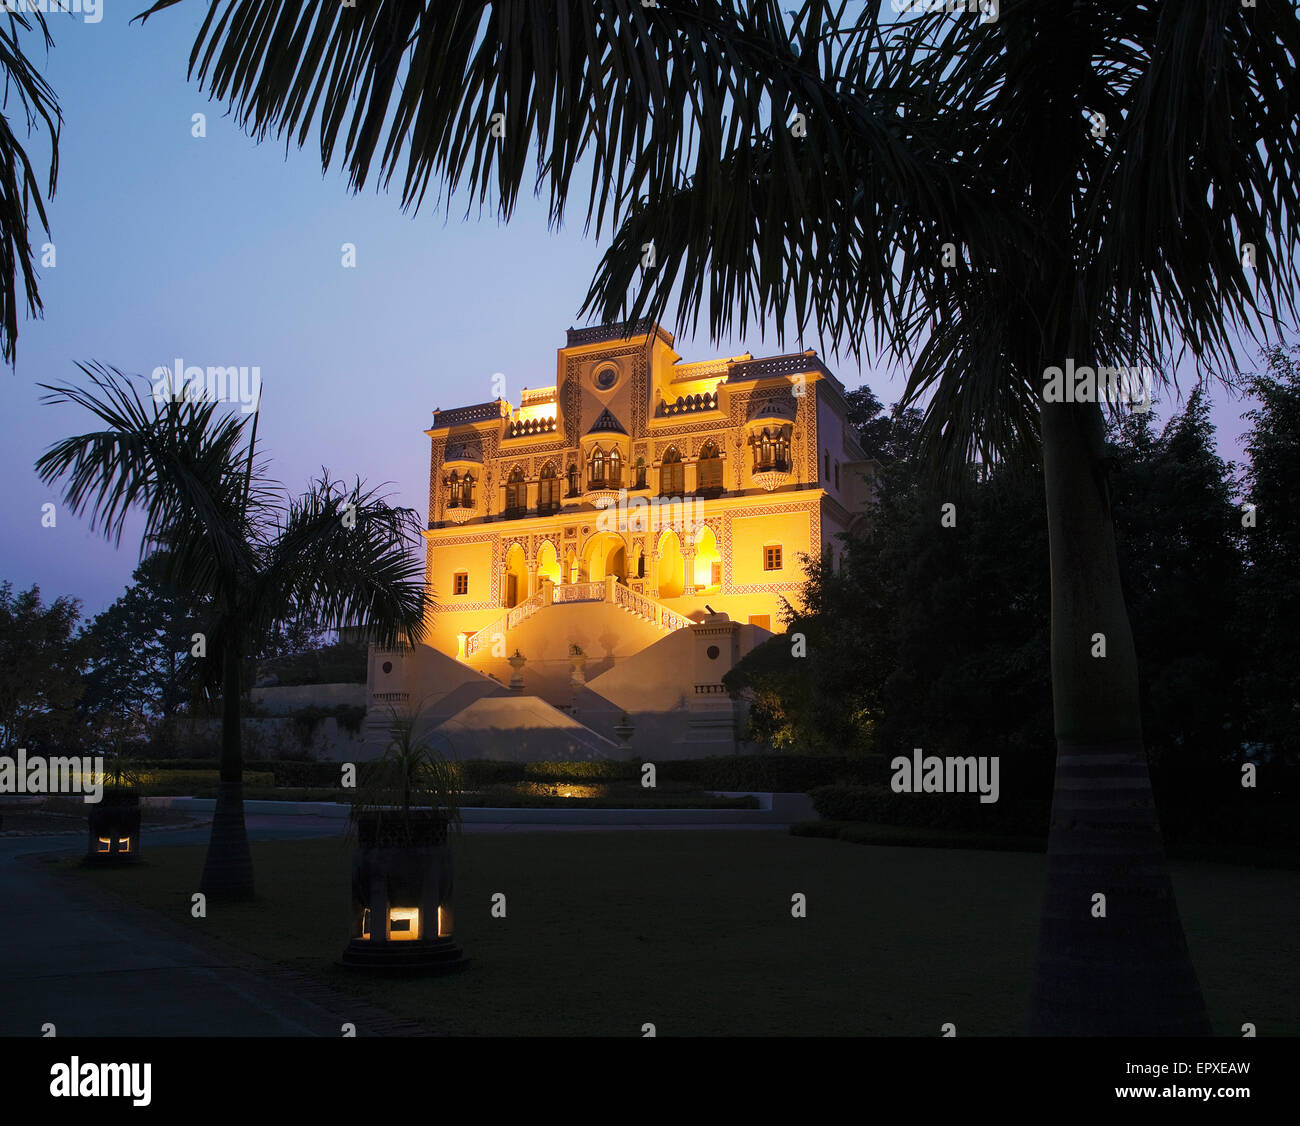 Exterior of the Maharajah's Palace at dusk, Ananda in the Himalayas, The Palace Estate, Narendra Nagar, Tehri Garhwal, - Stock Image